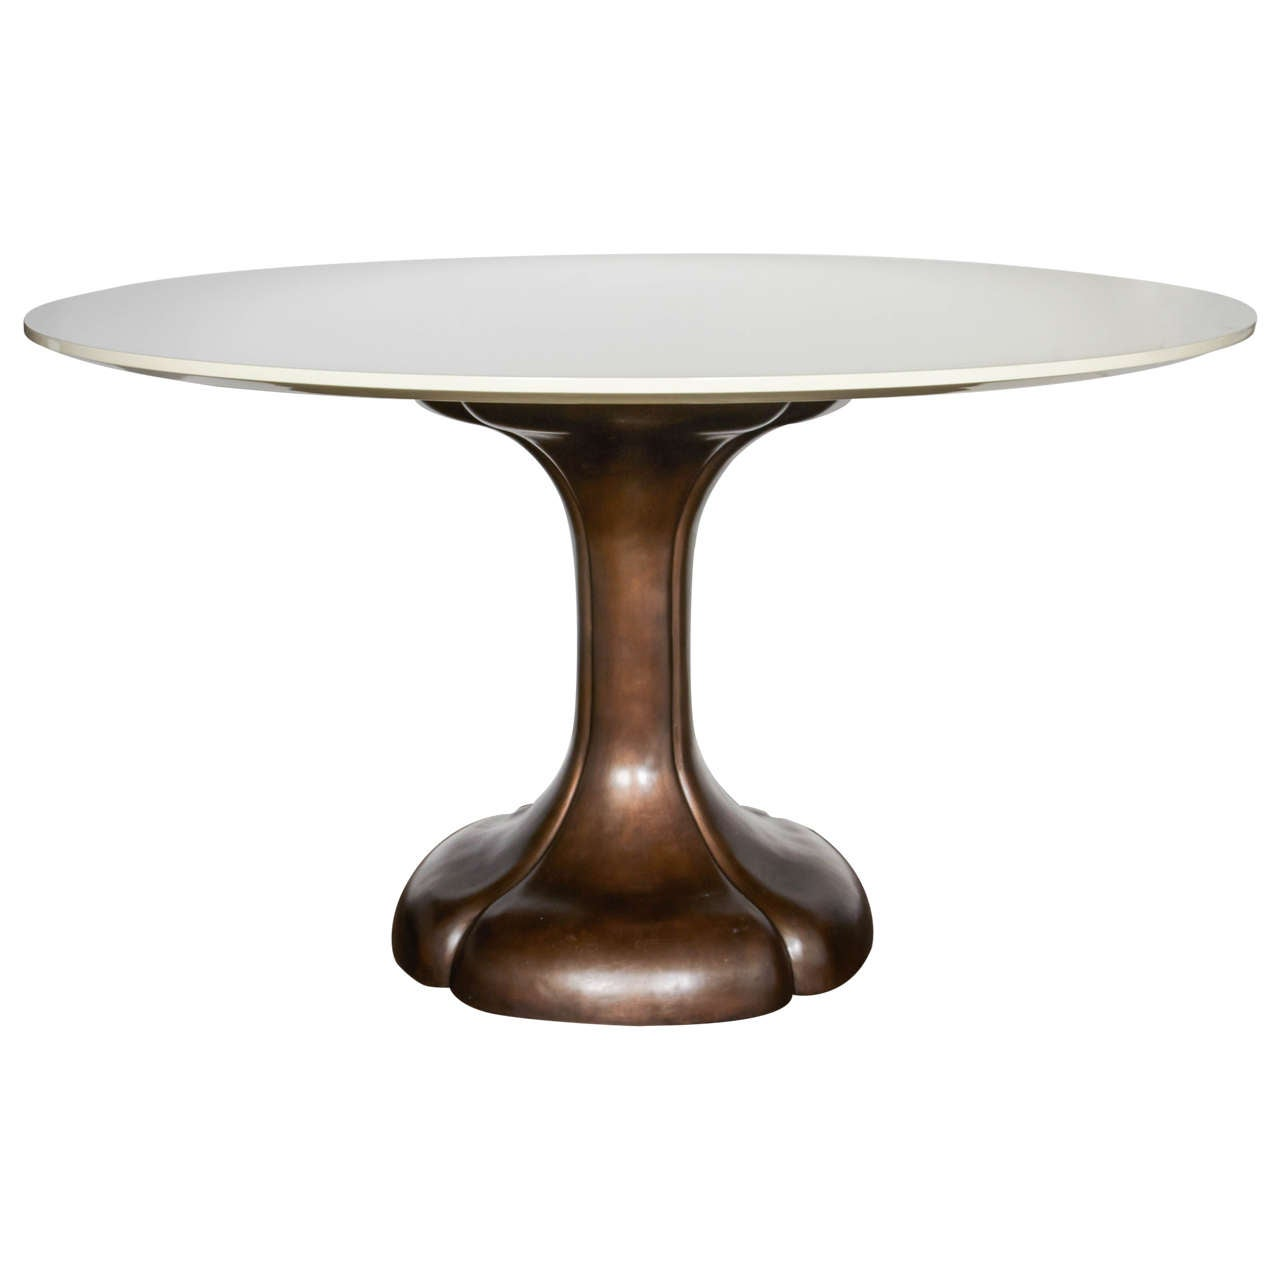 Art nouveau style round dining table with bronze pedestal for Dining table base